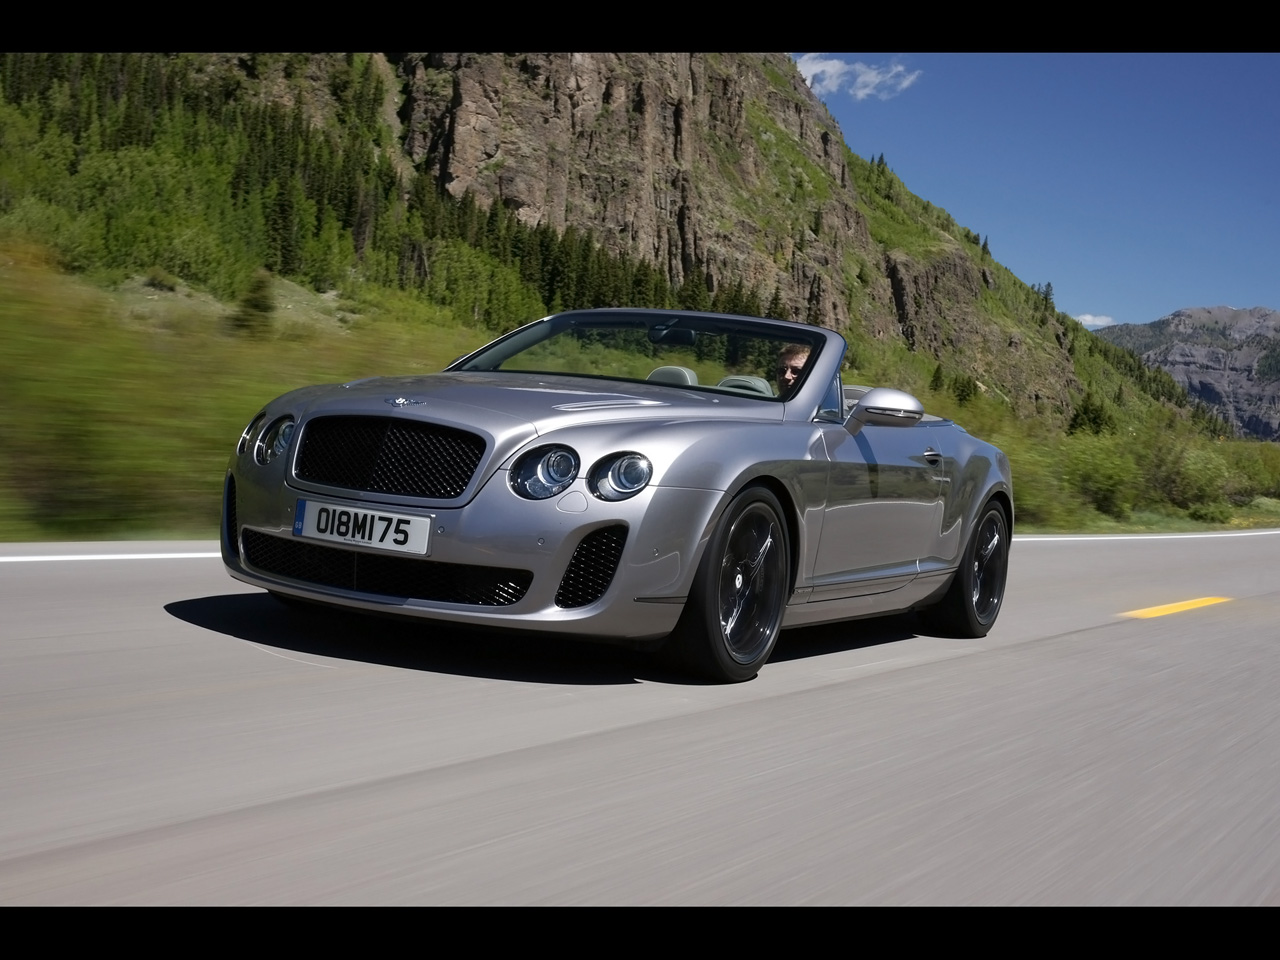 2017 Bentley Continental Supersports Convertible photo - 1